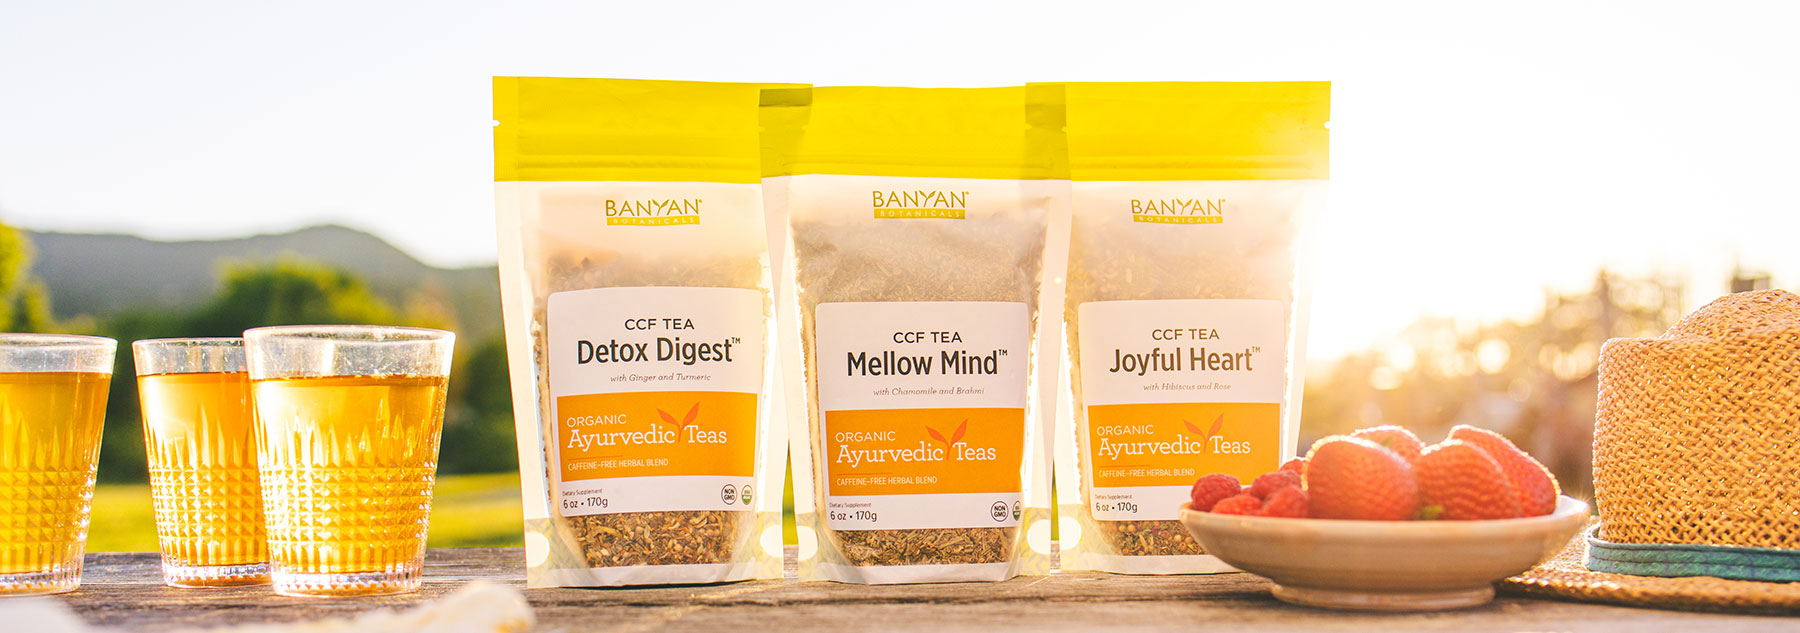 3 New CCF Tea Blends for Your Wellness Ritual